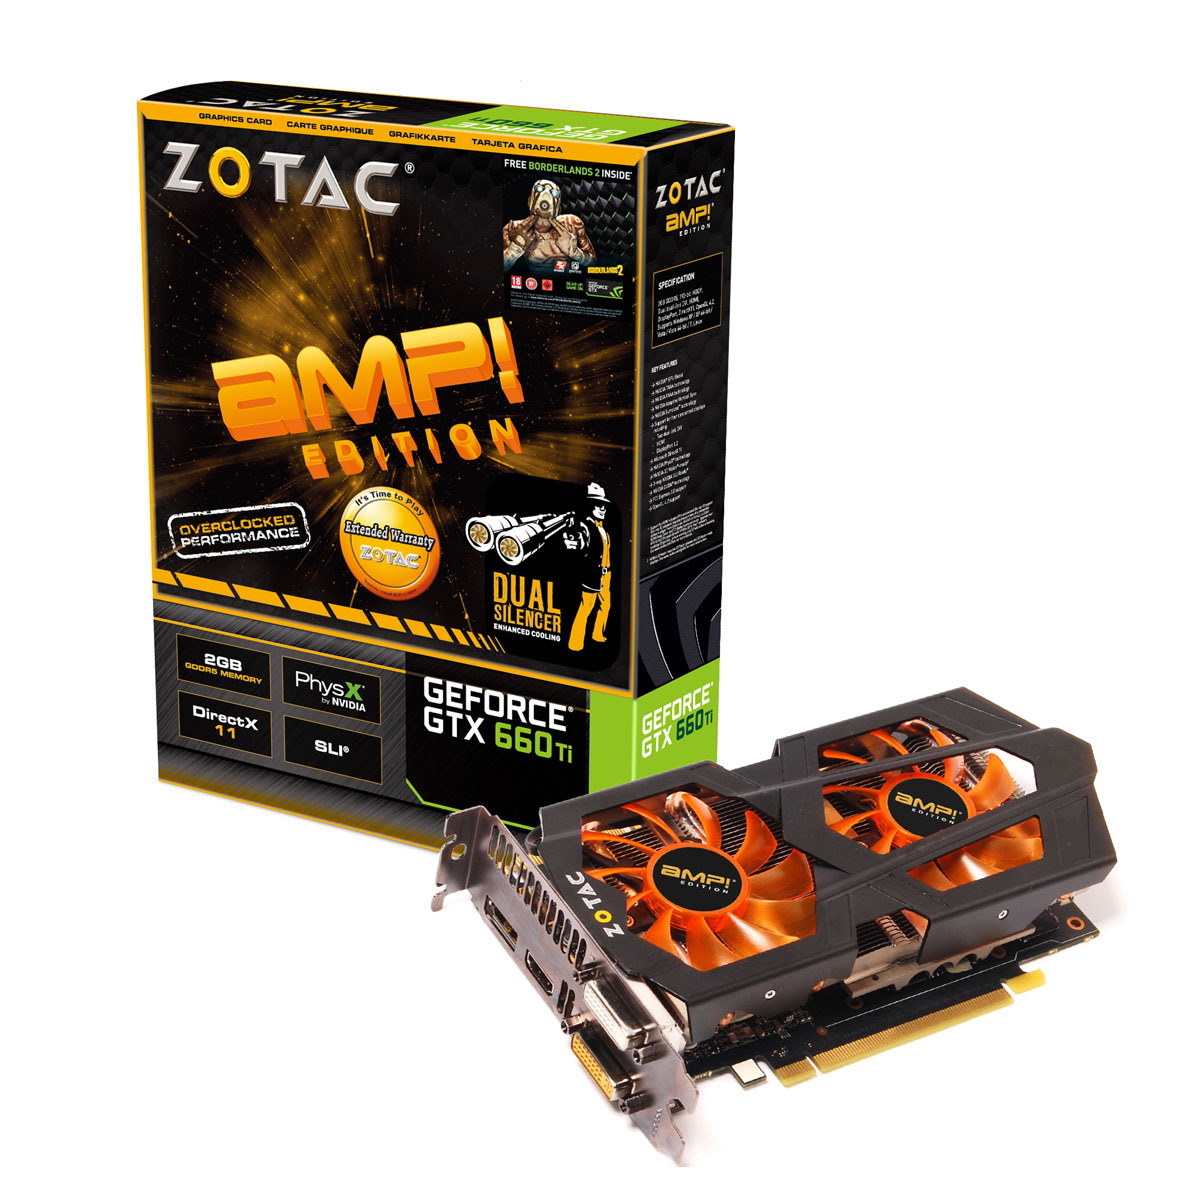 Carte graphique ZOTAC GeForce GTX 660Ti AMP ! Edition 2GB 2048 Mo Dual DVI/HDMI/DisplayPort - PCI Express (NVIDIA GeForce avec CUDA GTX 660 Ti) + Borderlands 2